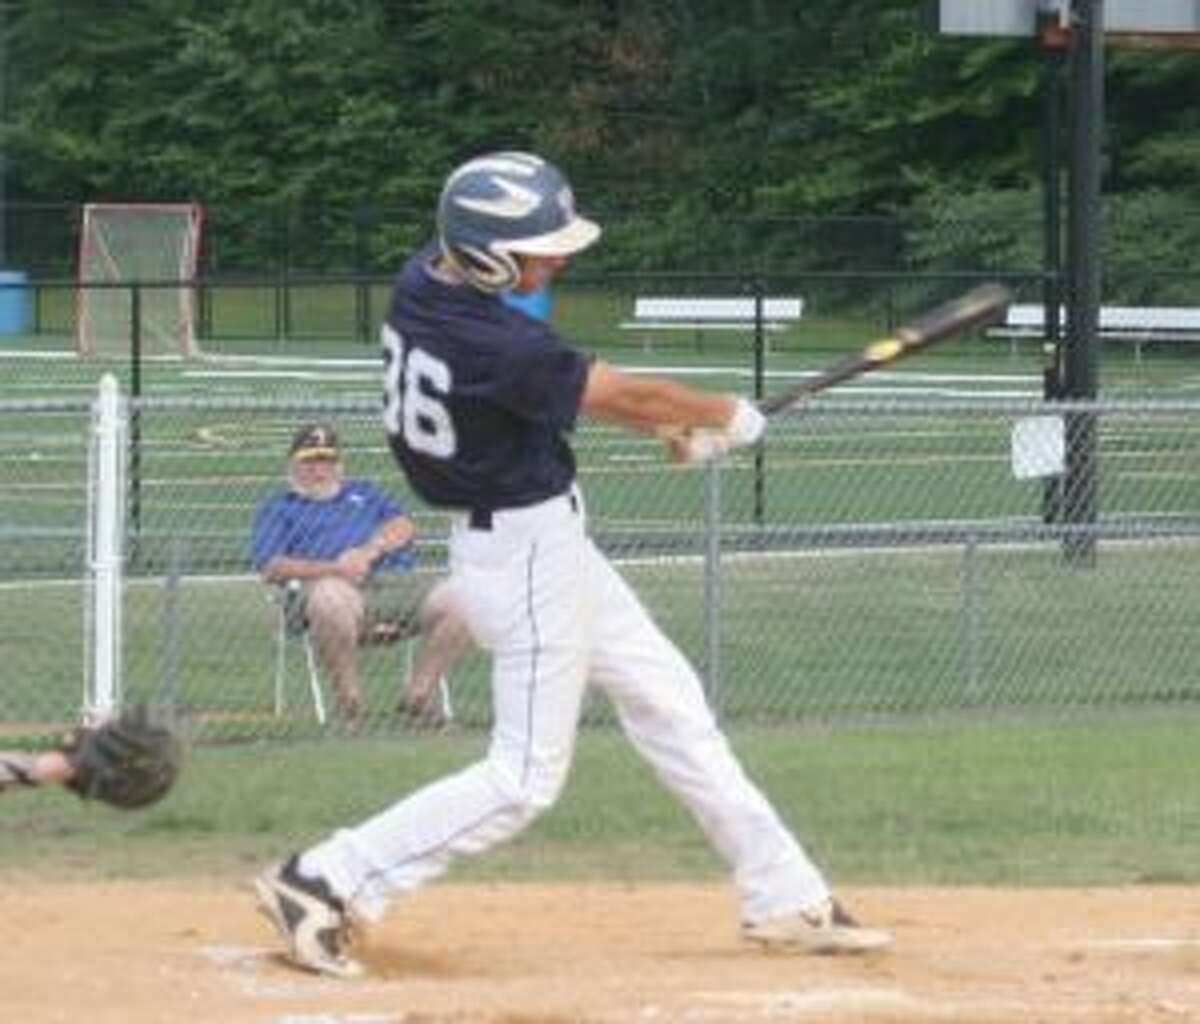 Chase Dralle had a single in Trumbull's five run rally in the first inning.